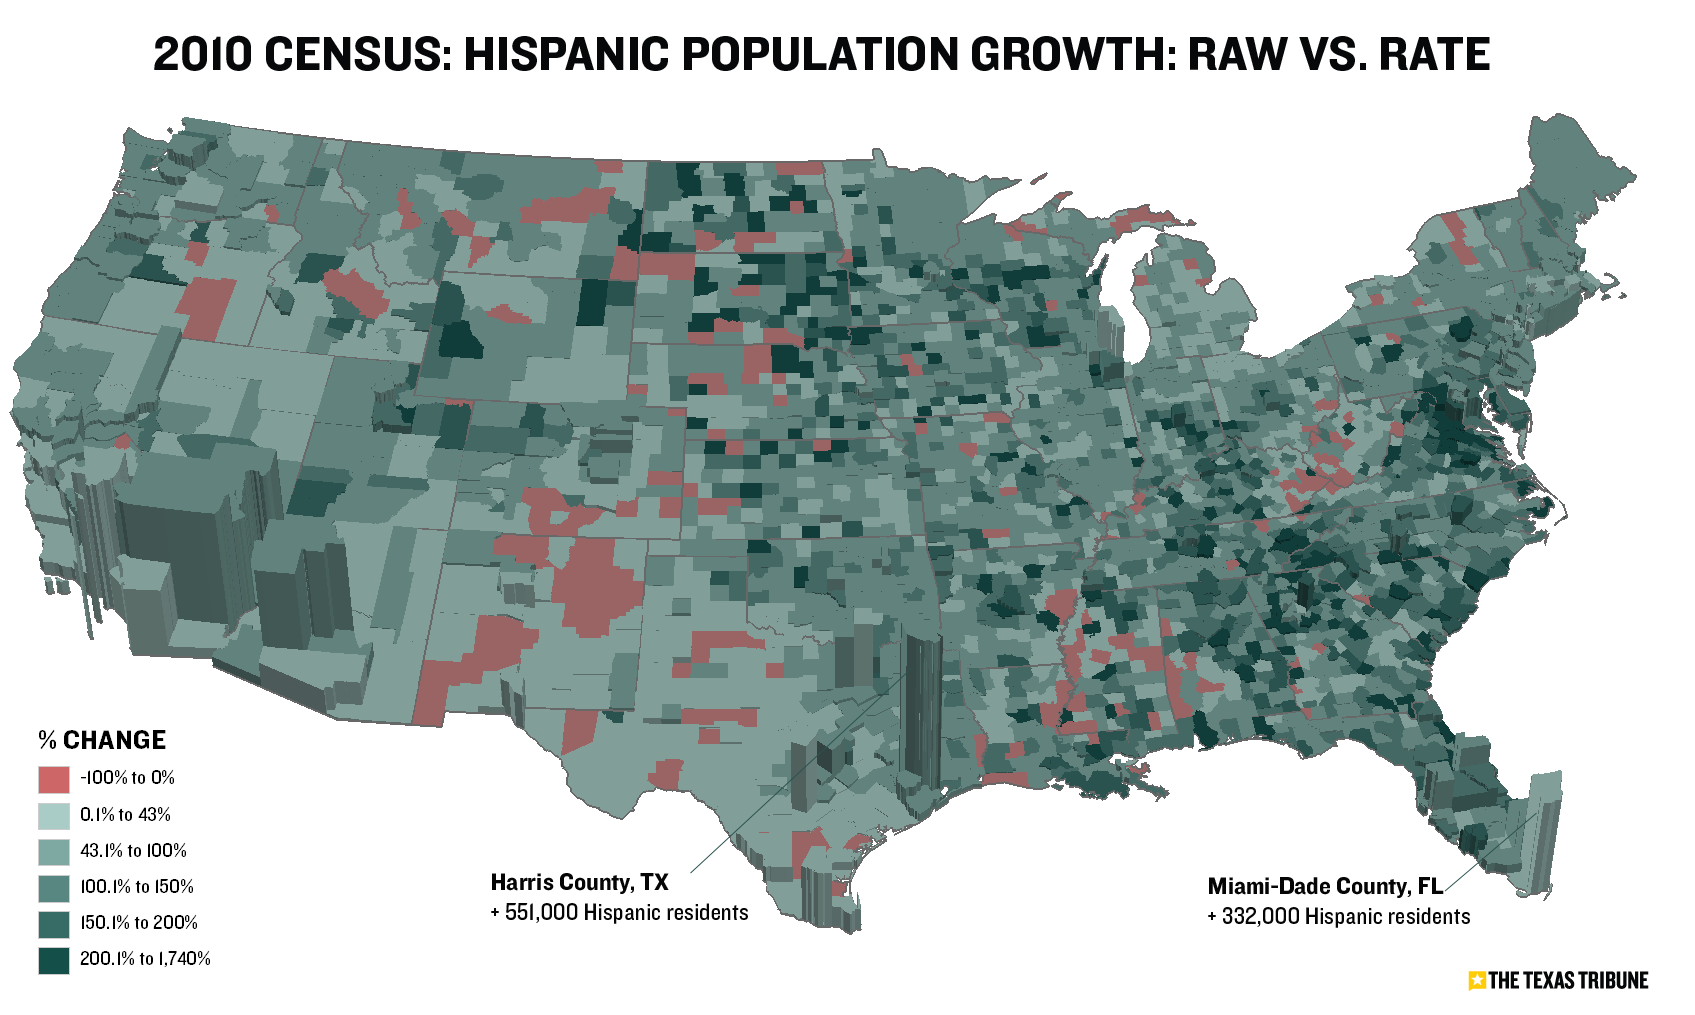 Maps Visualize US Population Growth By County The Texas Tribune - Map us population